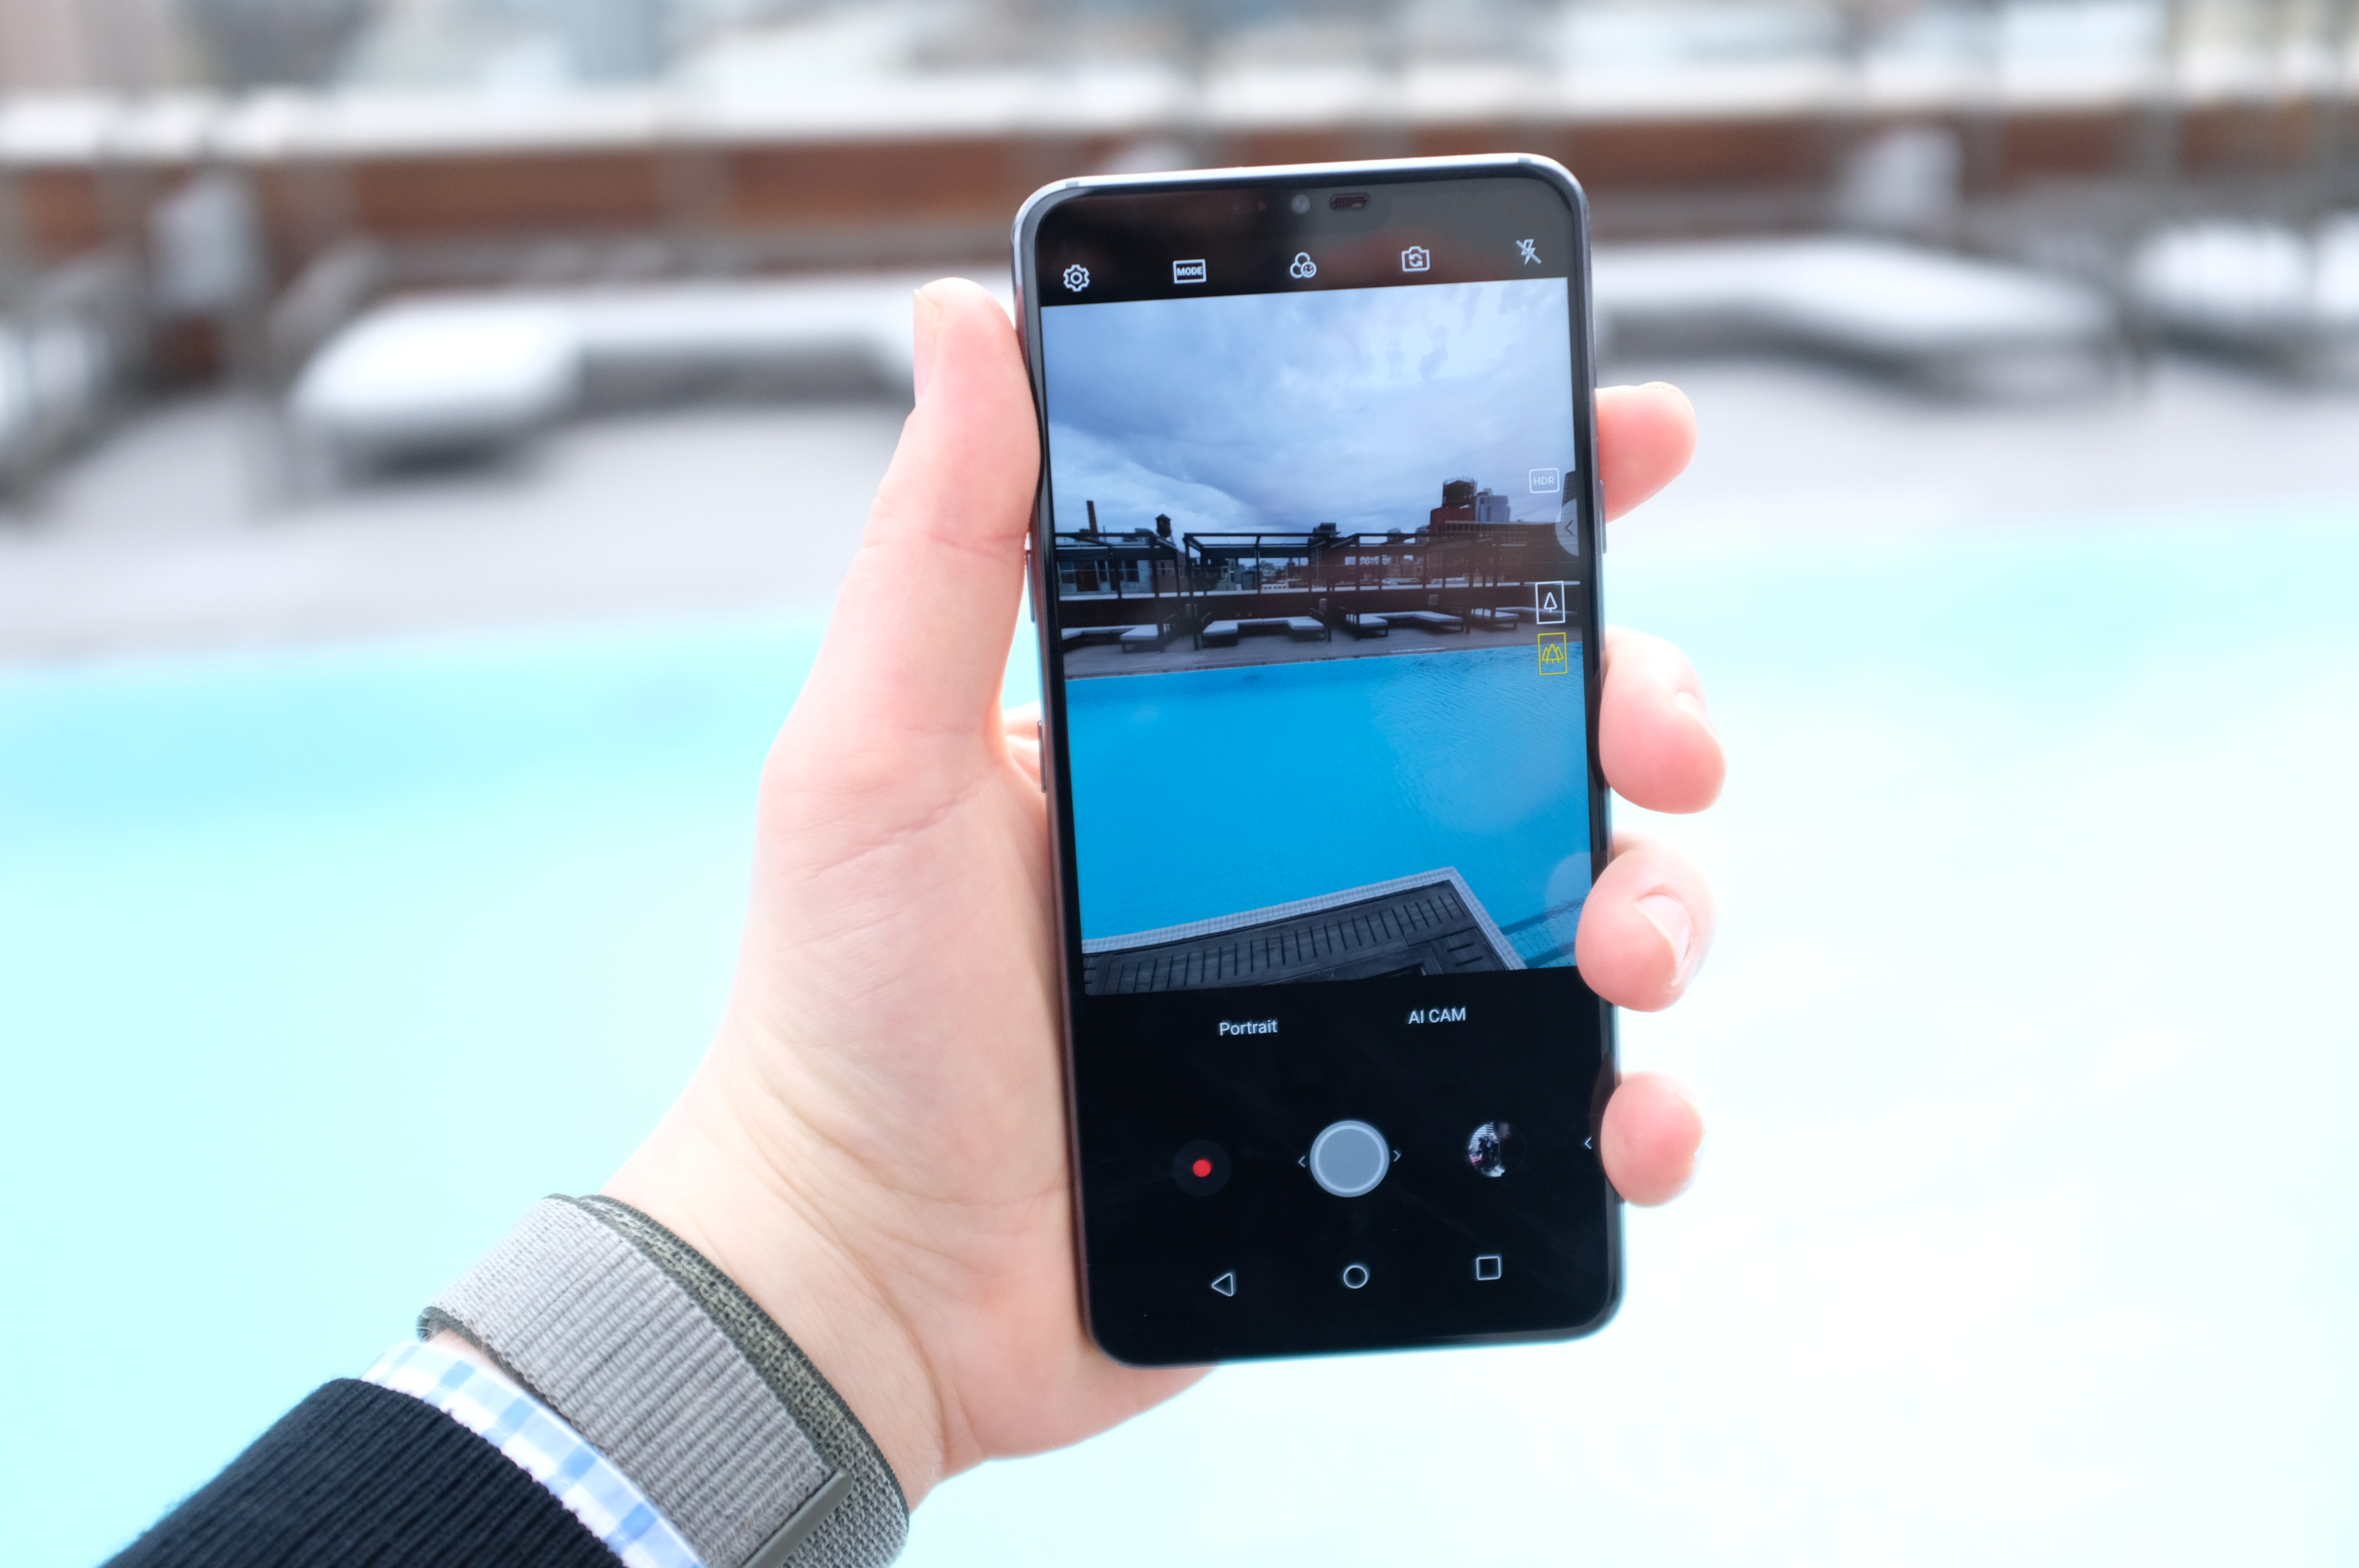 LG adds more AI camera features and a notch for the G7 ThinQ